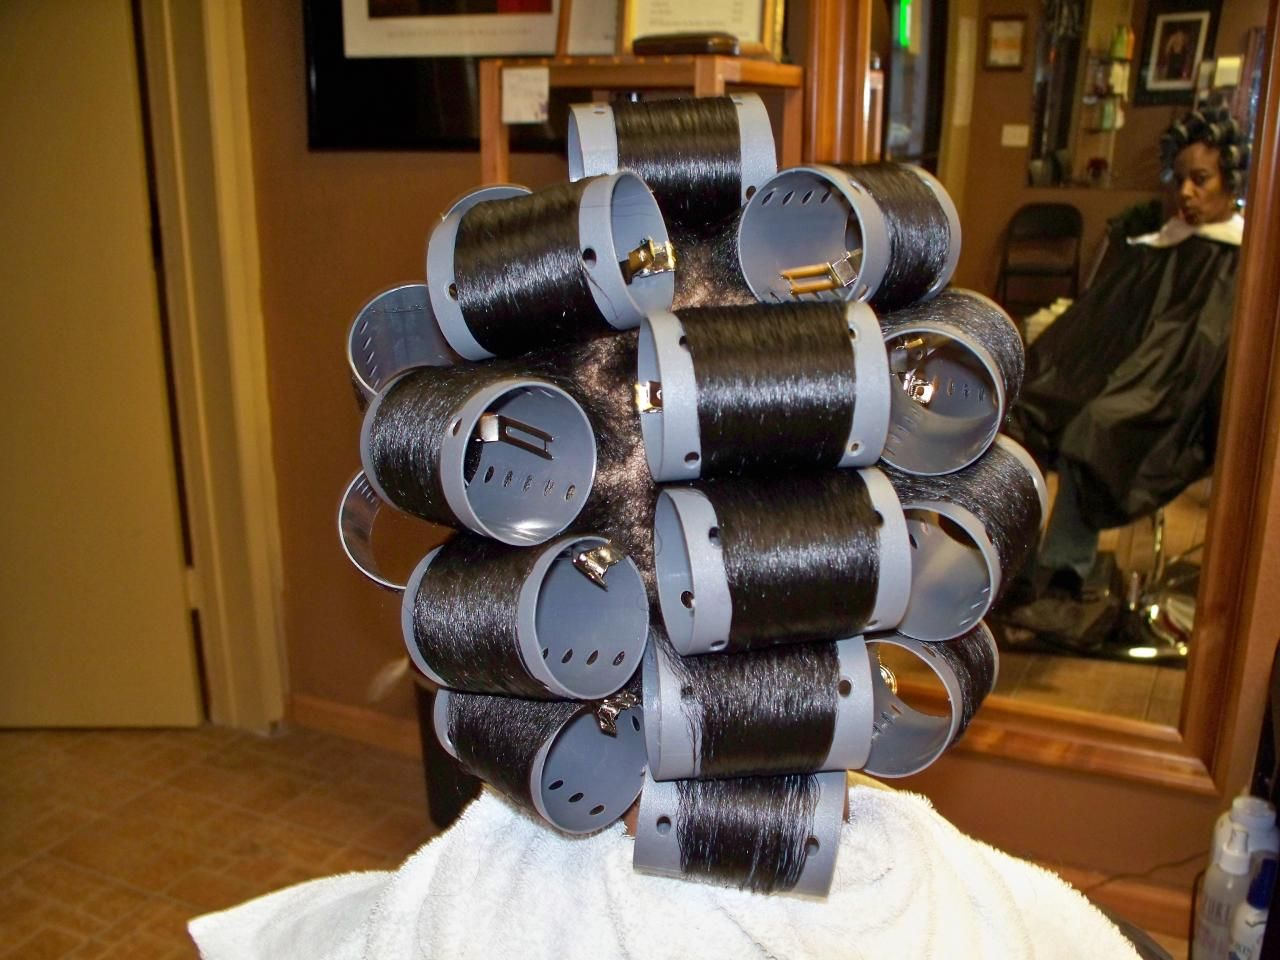 Phenomenal Roller Setting Relaxed Hair Roller Set Rollers And Curlers Short Hairstyles For Black Women Fulllsitofus